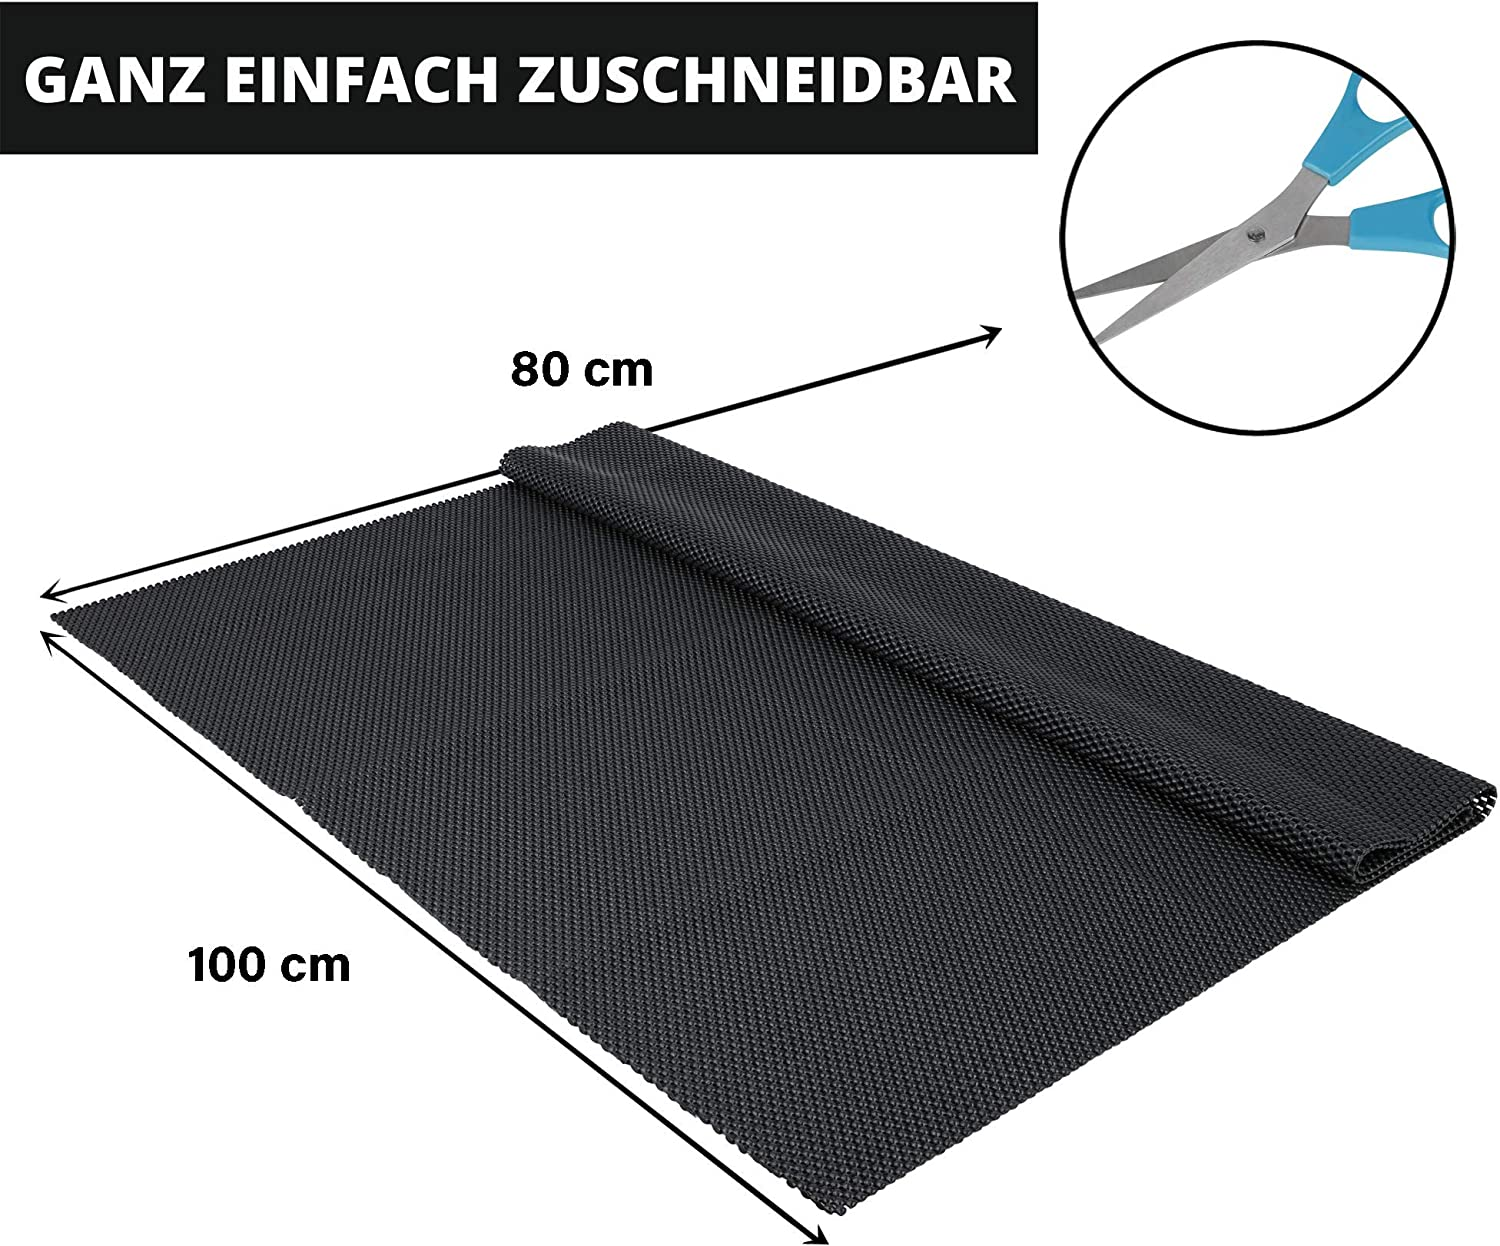 80 x 100 cm Universal Use Can be Cut to Size Carpet Underlay // Boot Protection and Much More Maximum Slip Protection Premium Anti-Slip Mat